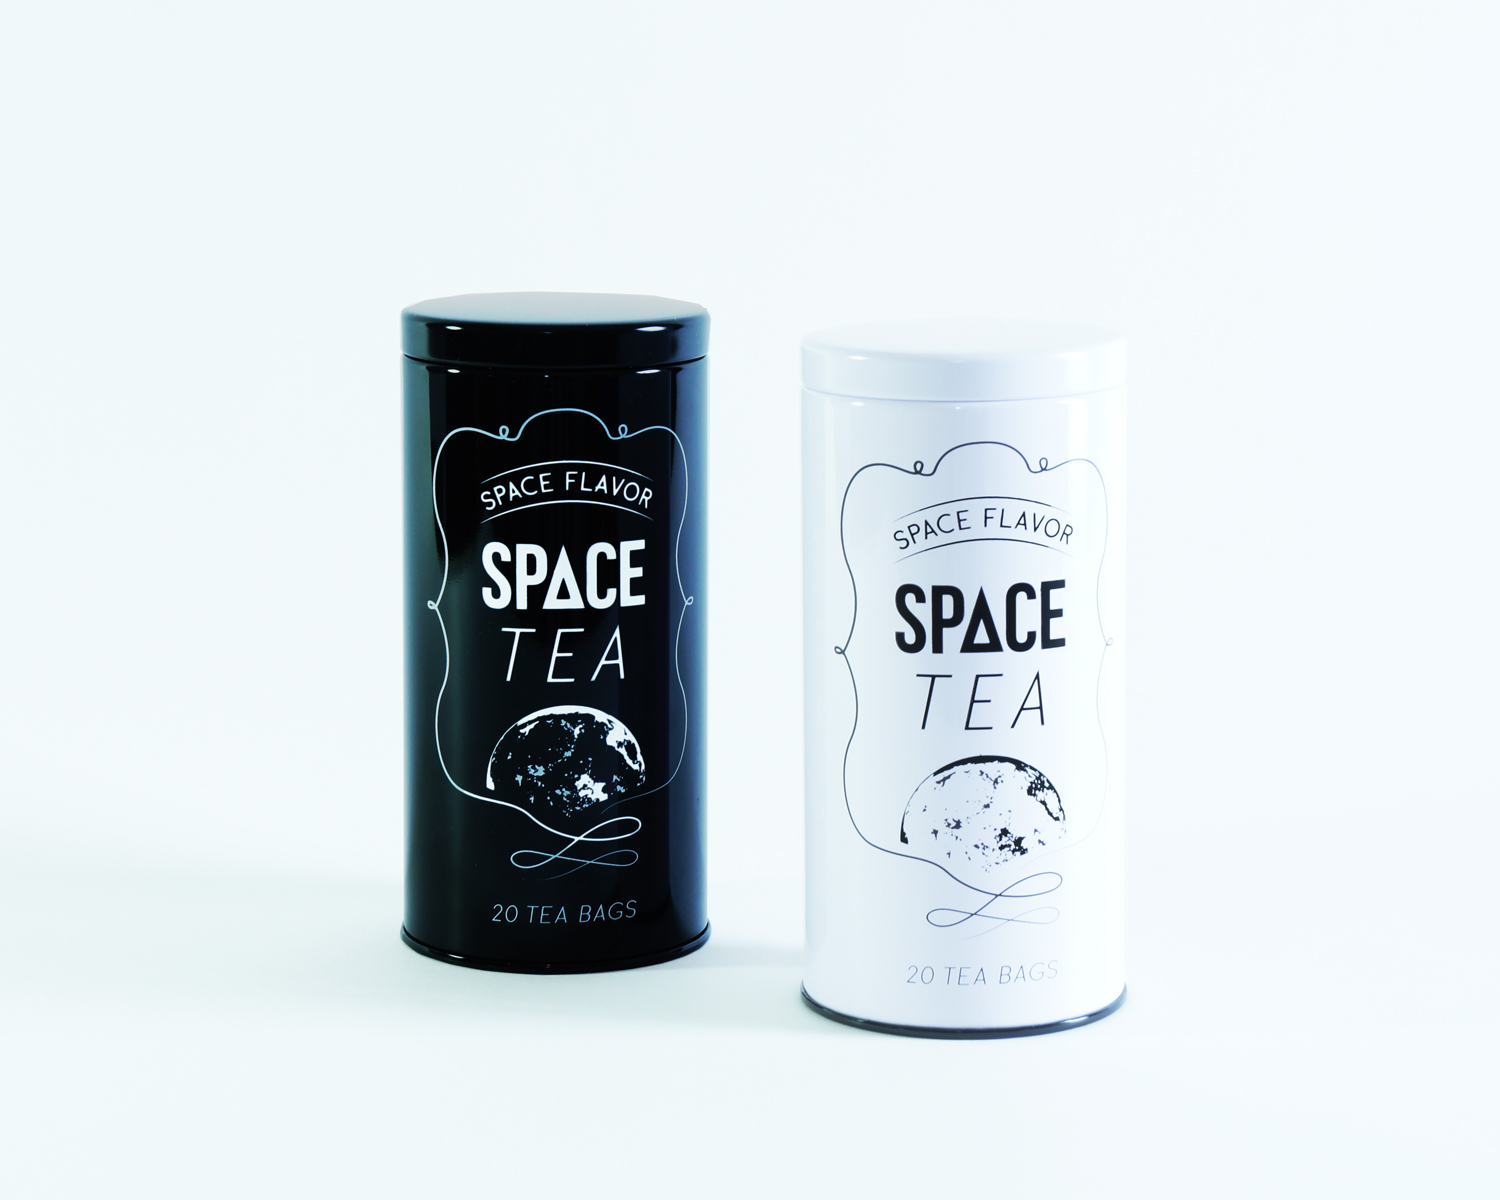 http://base.space-tea.com/